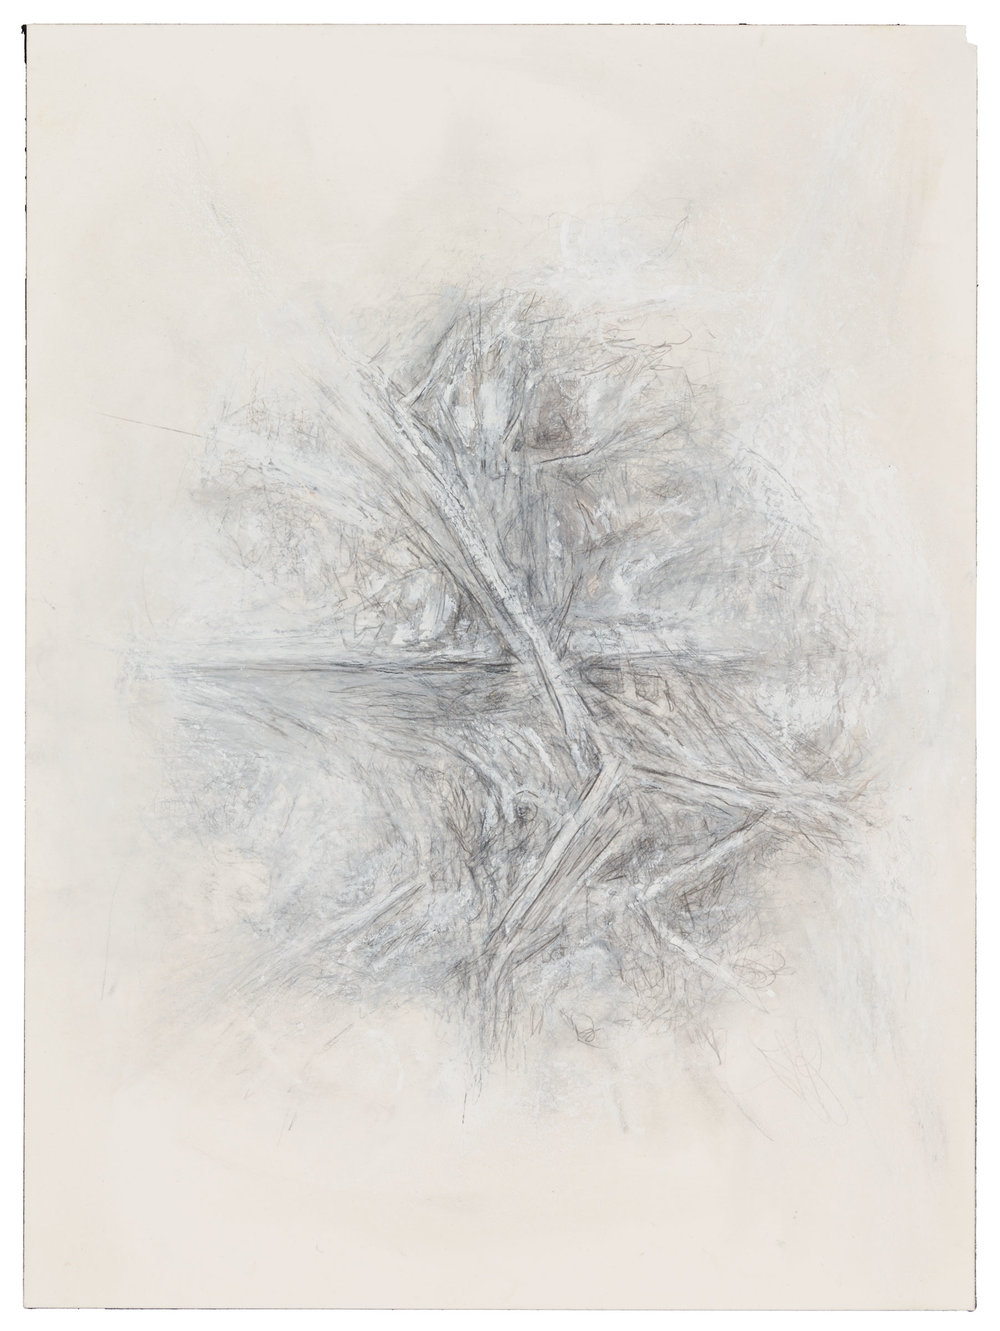 Hedda Sterne, Untitled (October 10, 2001), 2001, Mixed media on paper, 12 1/4 in. x 9 1/8 in. (31.12 cm x 23.18 cm)